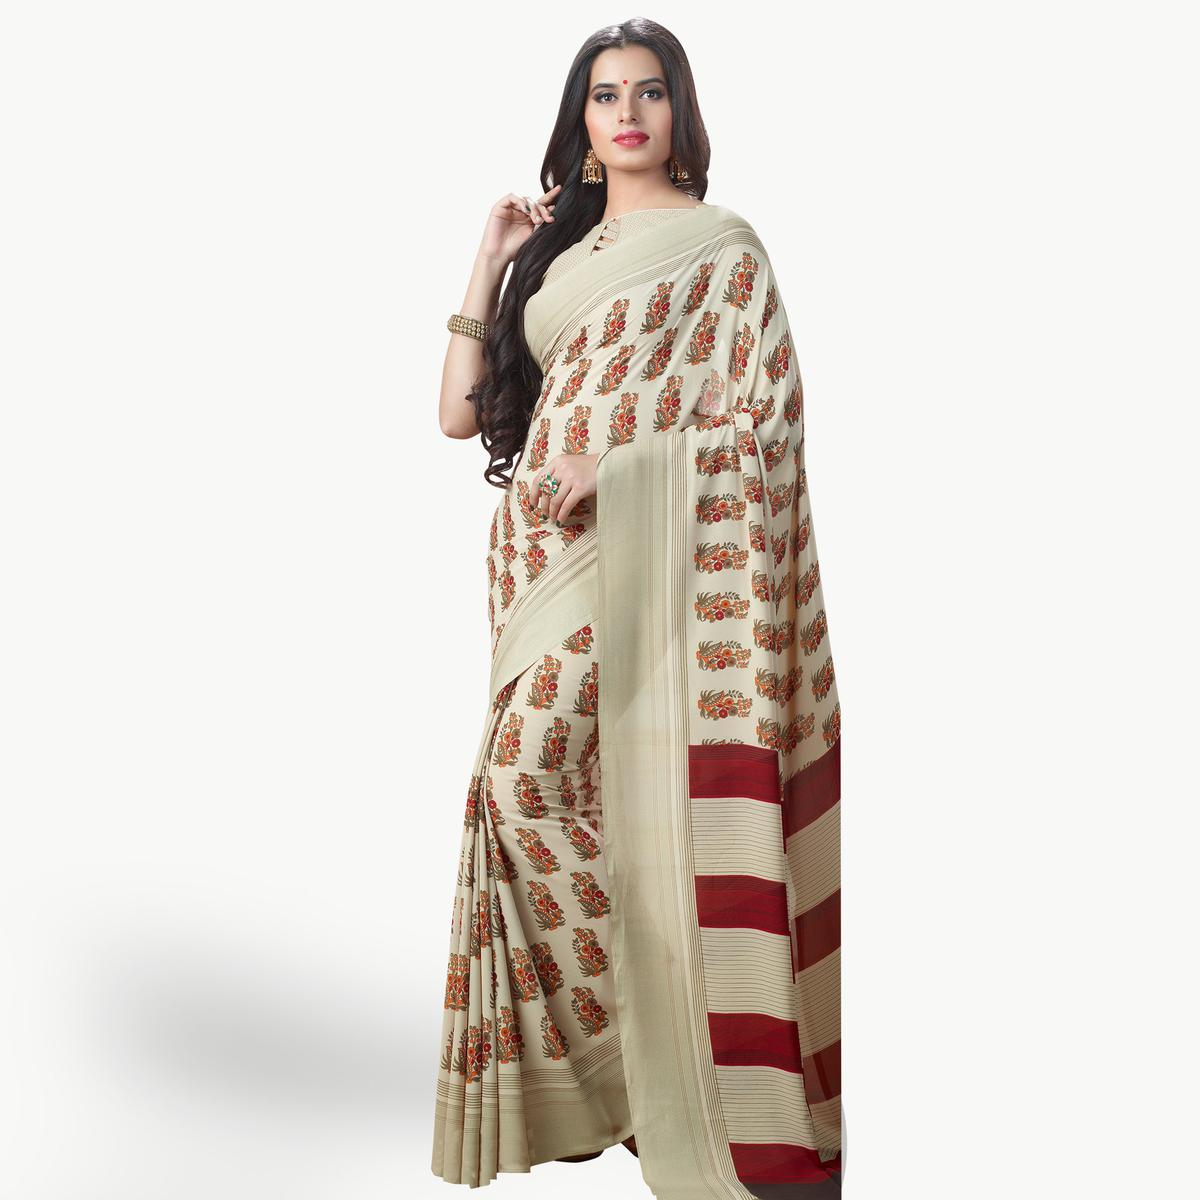 Blooming Off White Colored Casual Printed Georgette Saree